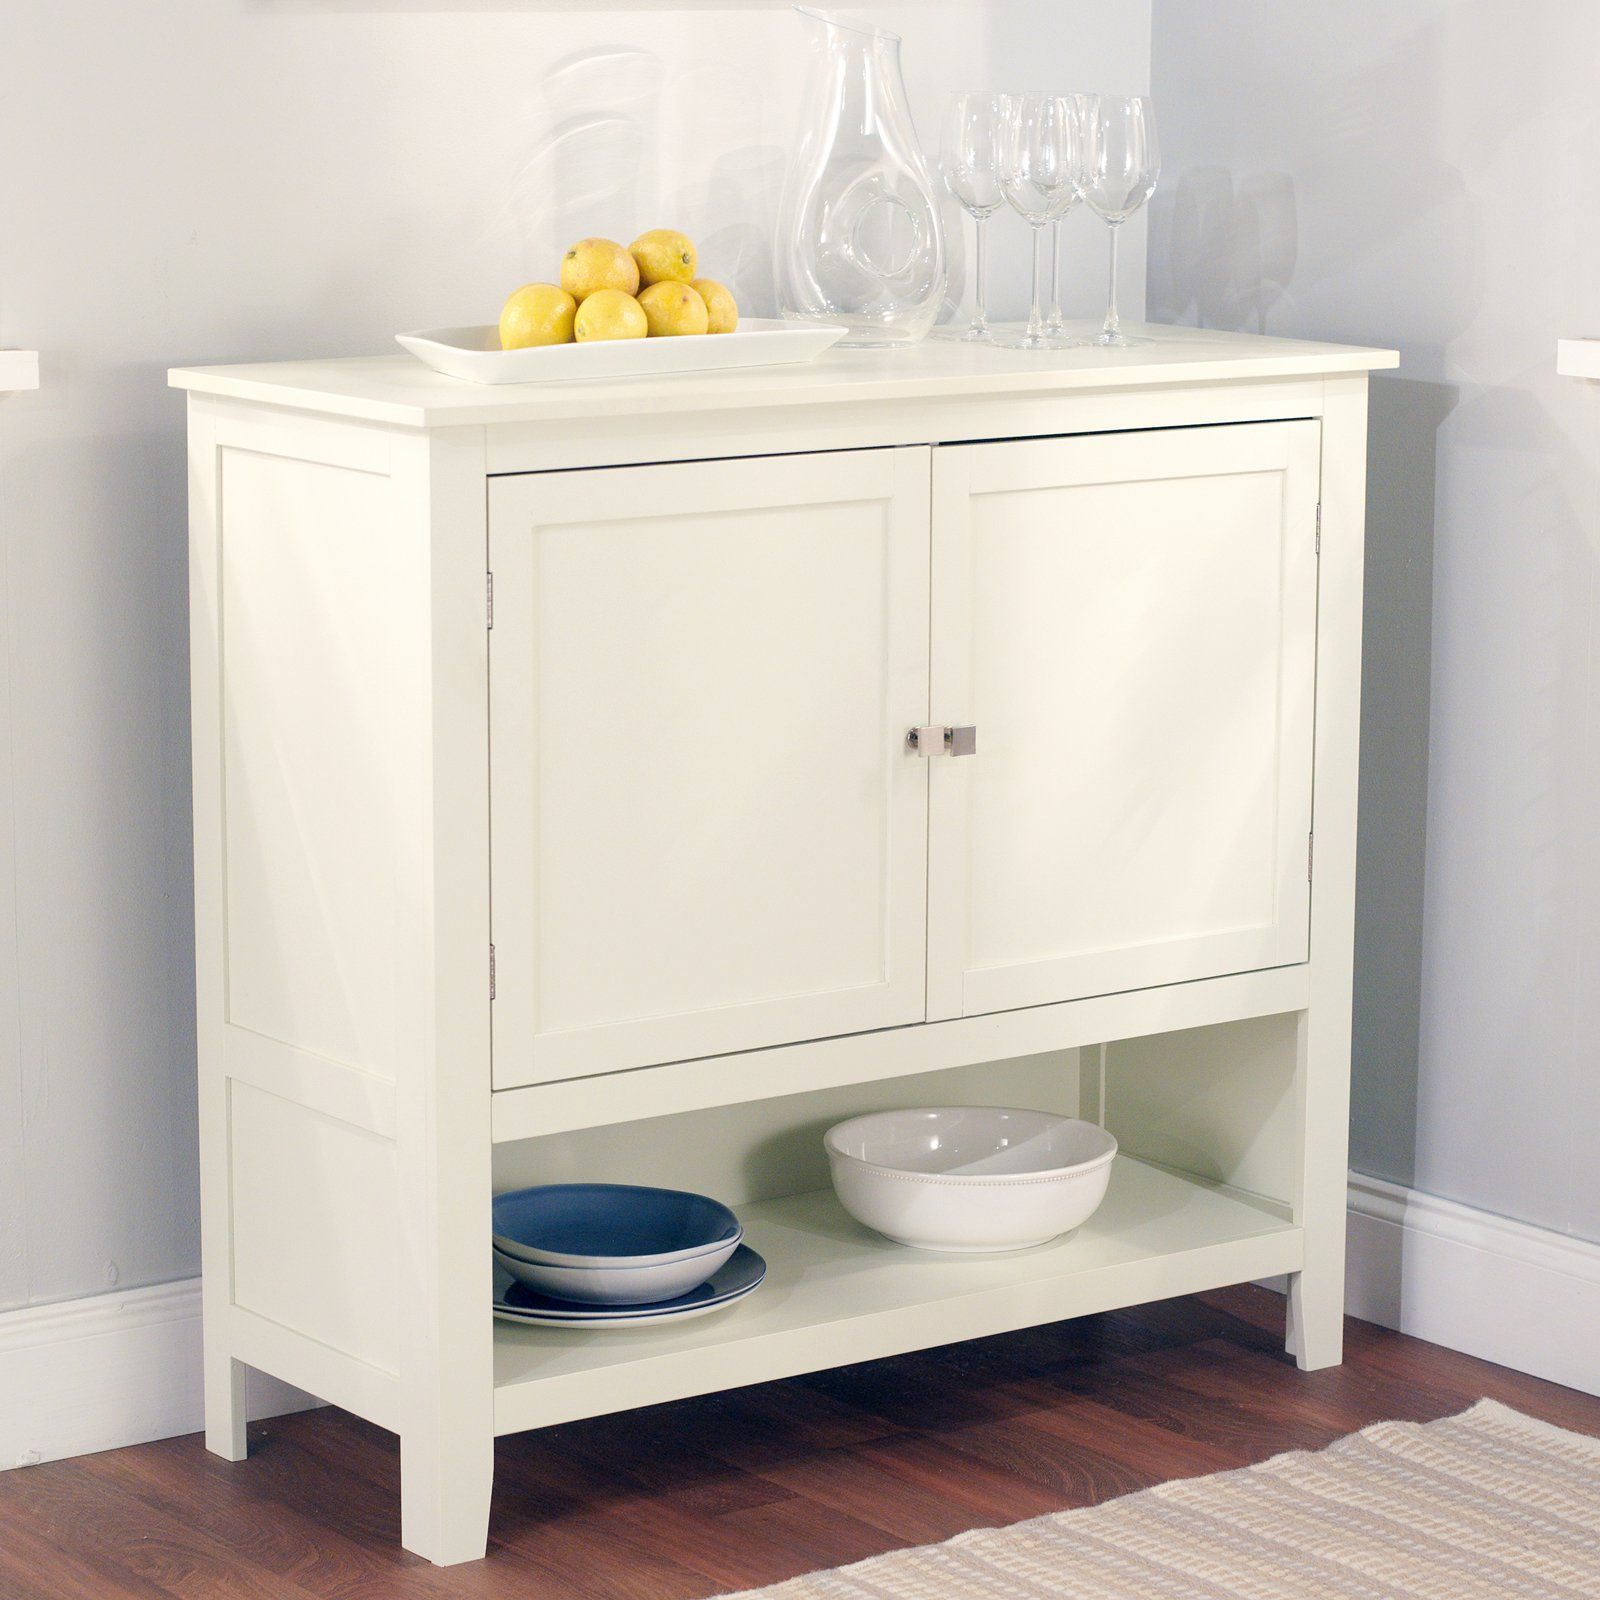 montego buffet | kitchen buffet cabinet, white buffet